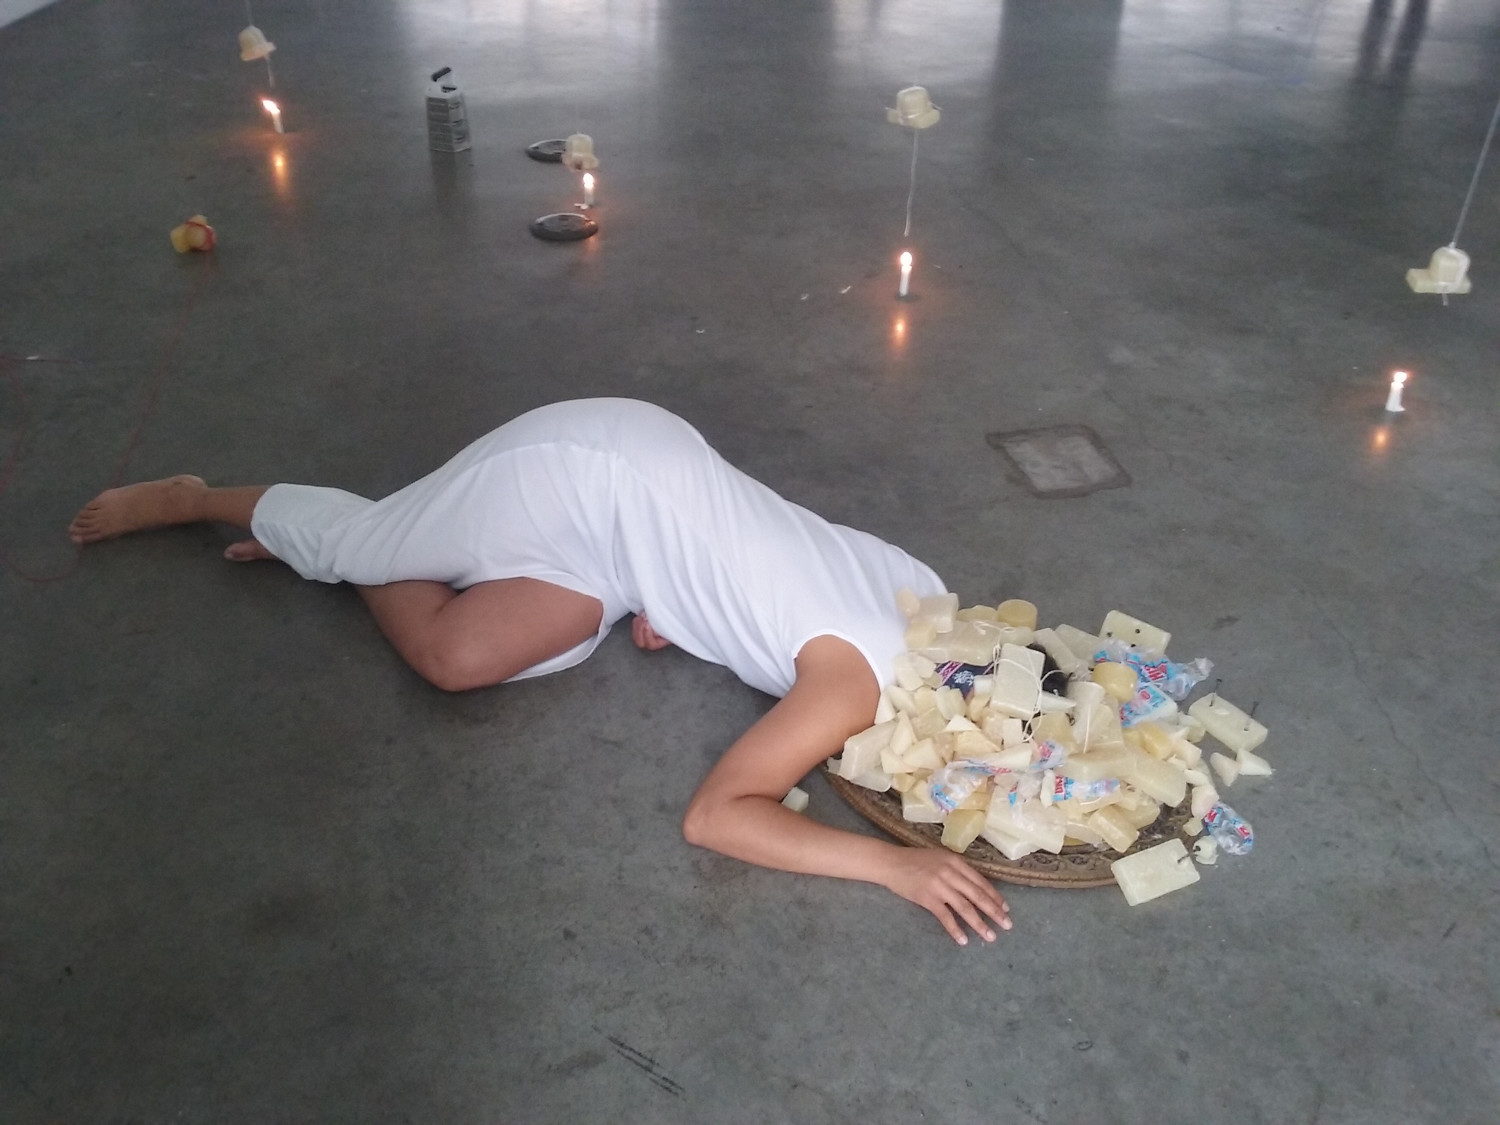 Francheska Alcántara's 'Still Do I Keep' is a performance piece she brought to the Bronx Museum of the Arts during its 'Bronx Latin American Biennial' in 2016. Alcántara is one of many female artists featured in the Longwood Art Gallery's latest exhibition, 'Her Art Will Be Cannibal.'